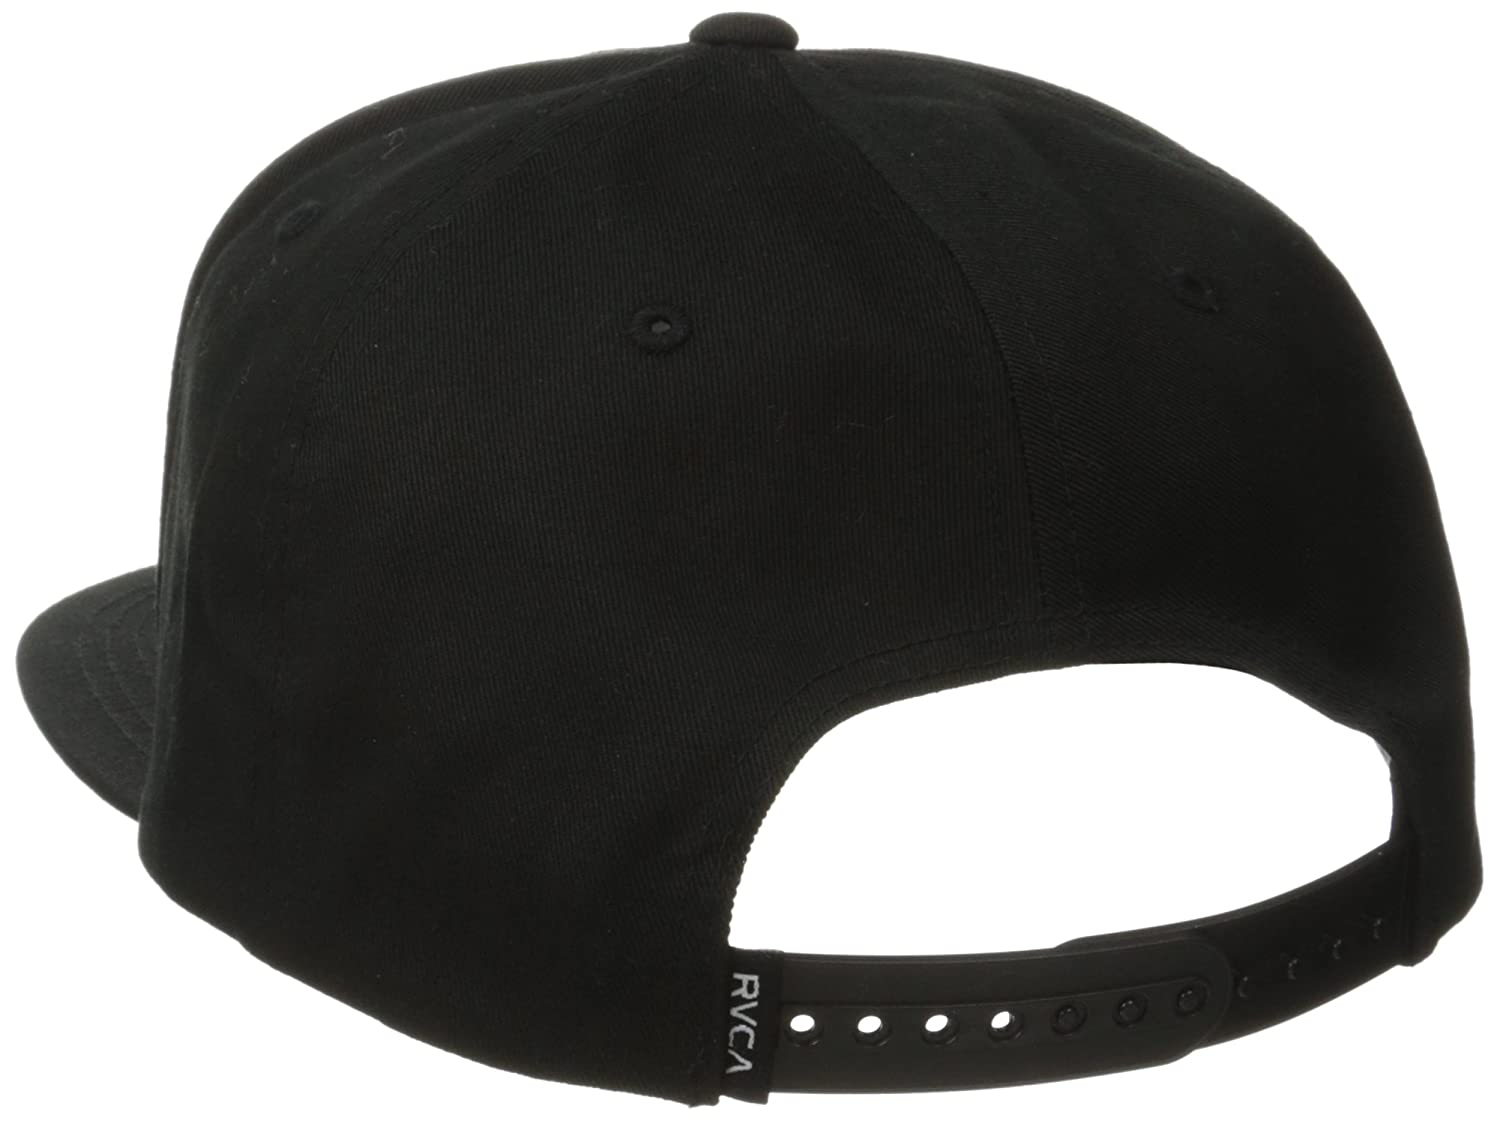 finest selection 7878b 3a60a Amazon.com  RVCA Men s Twill Snapback Six-Panel Trucker Hat  Clothing